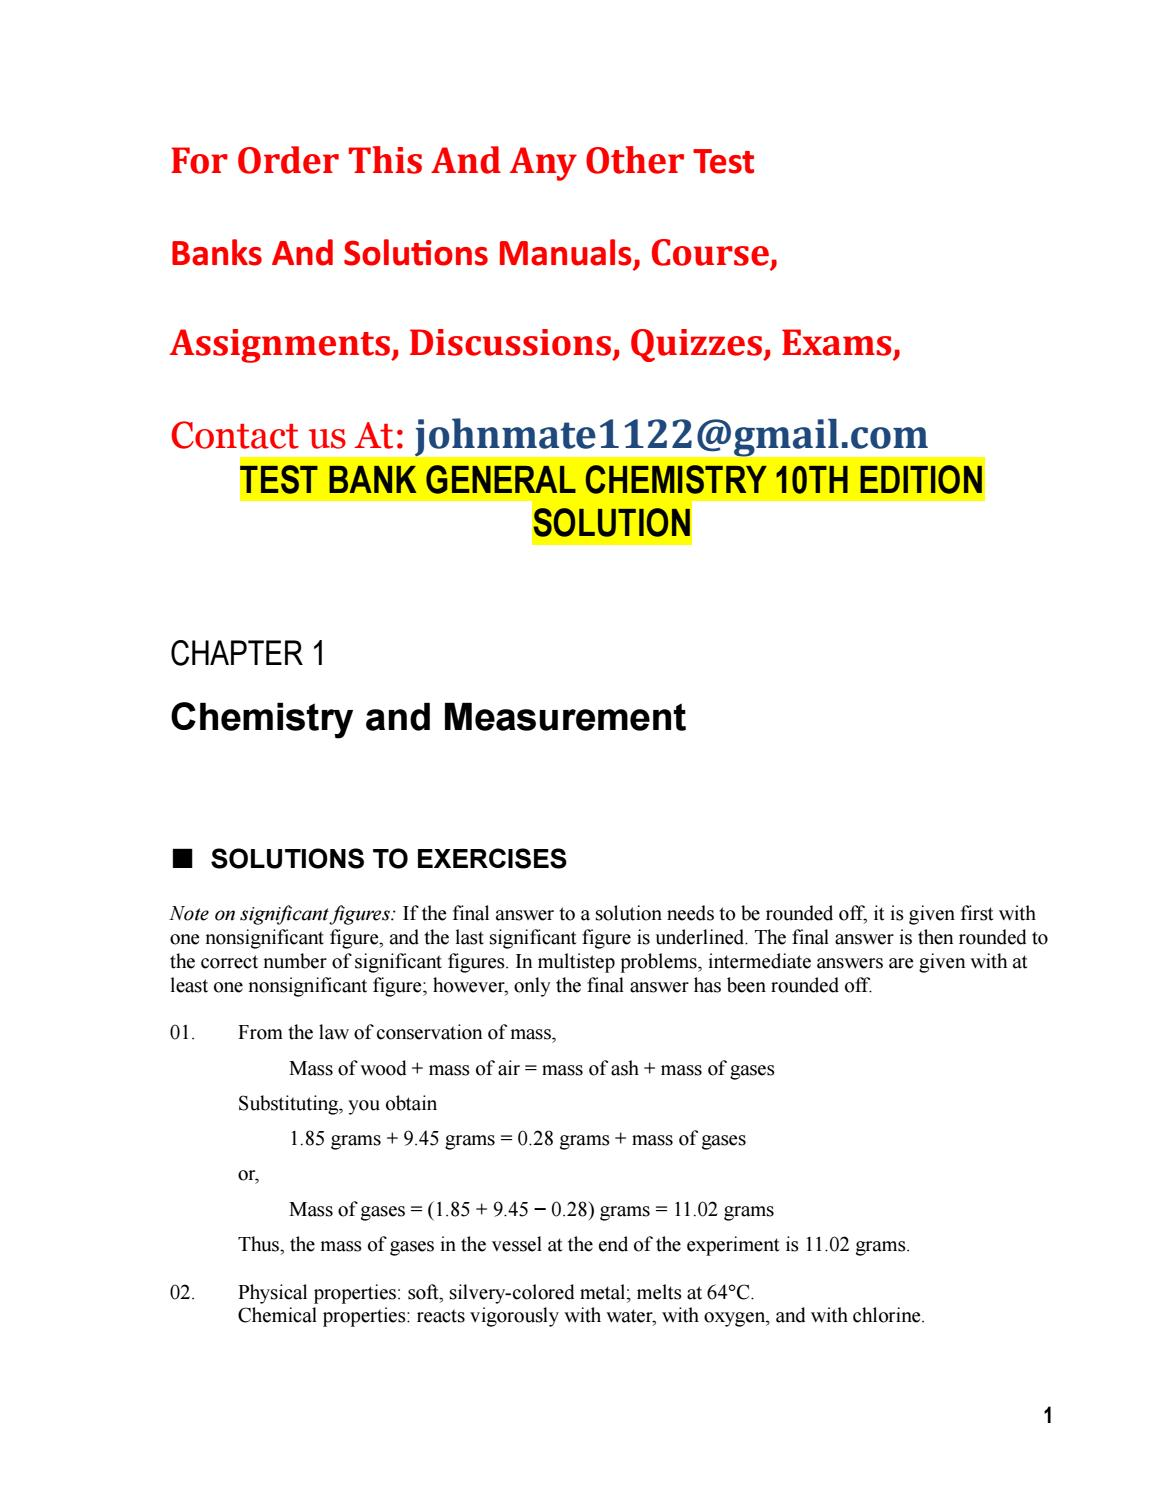 Test bank general chemistry 10th edition solution by james1shields test bank general chemistry 10th edition solution by james1shields issuu publicscrutiny Images